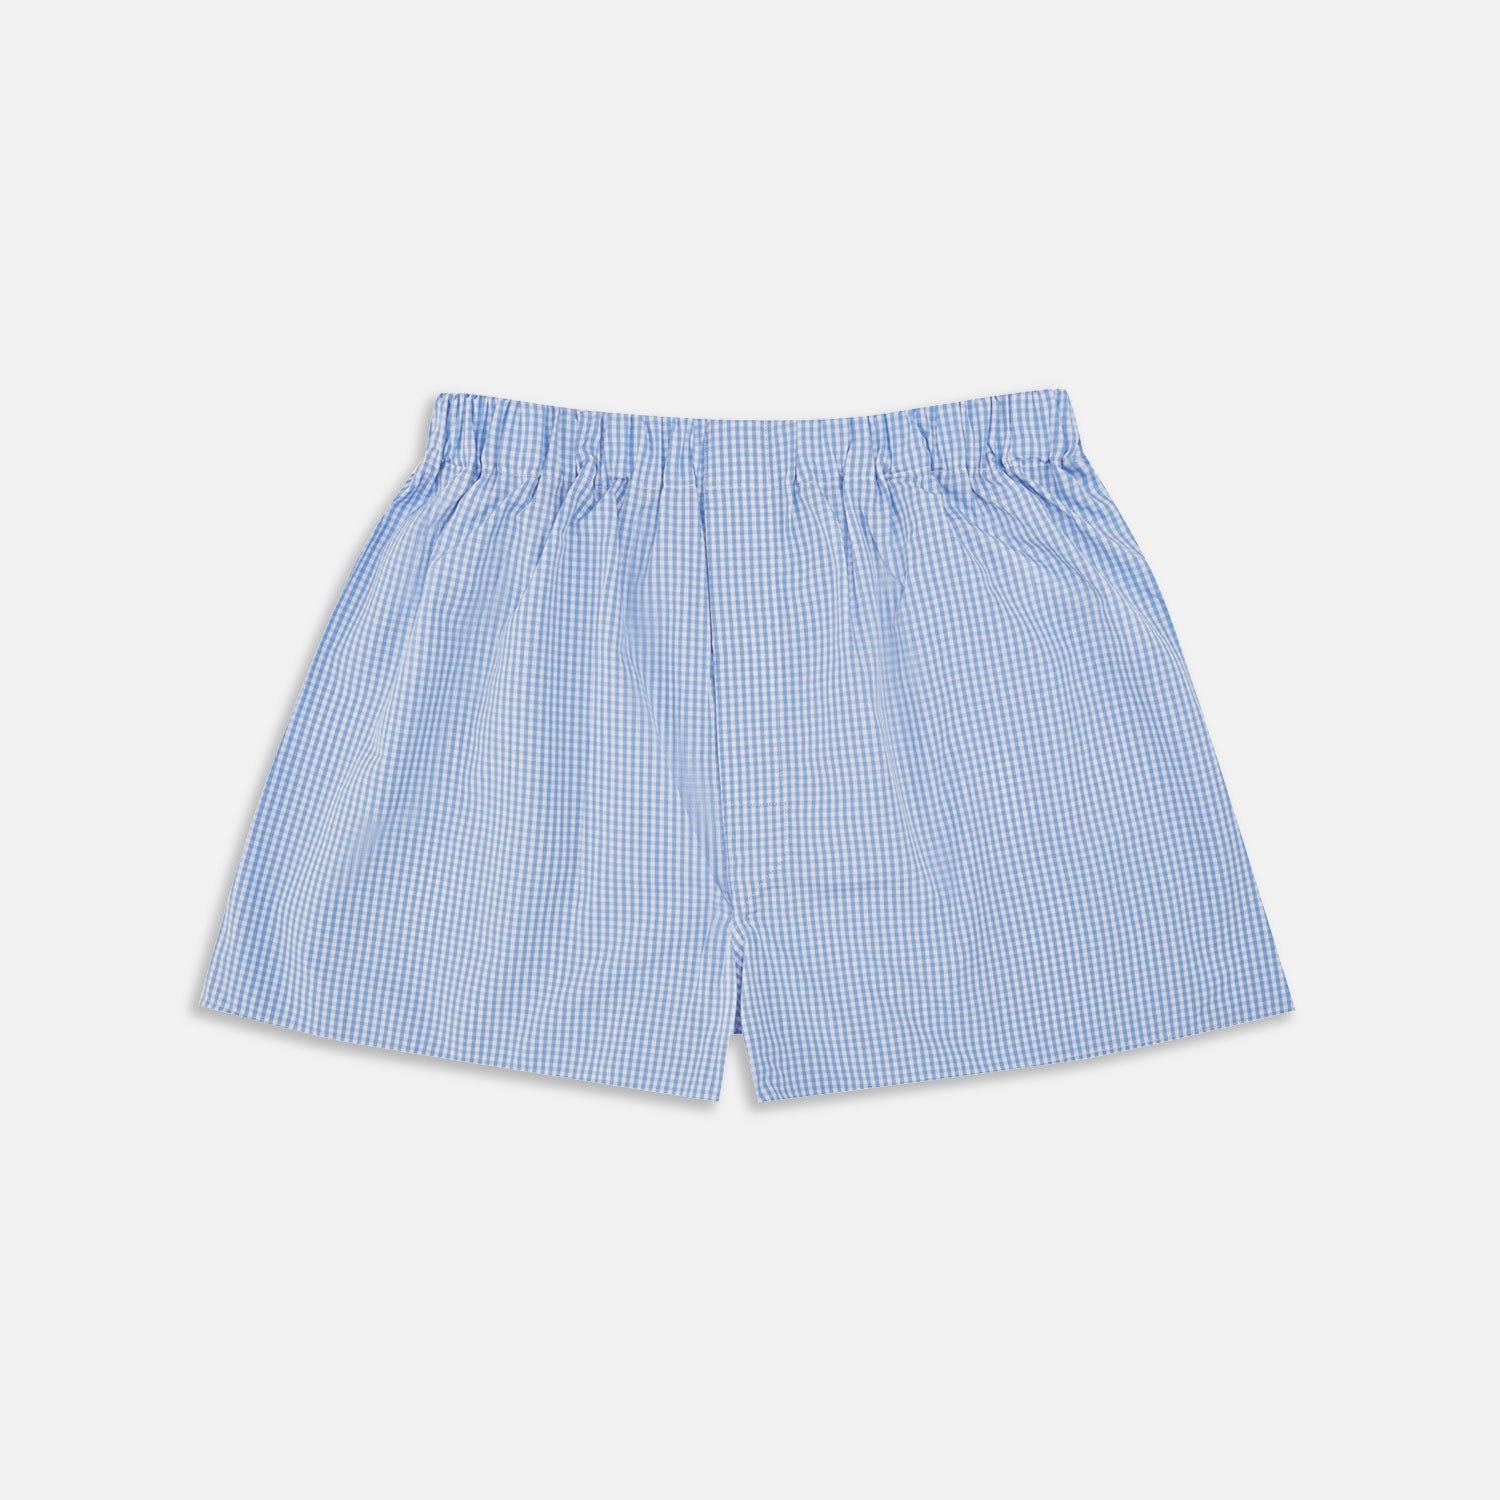 Light Blue Gingham Cotton Boxer Shorts